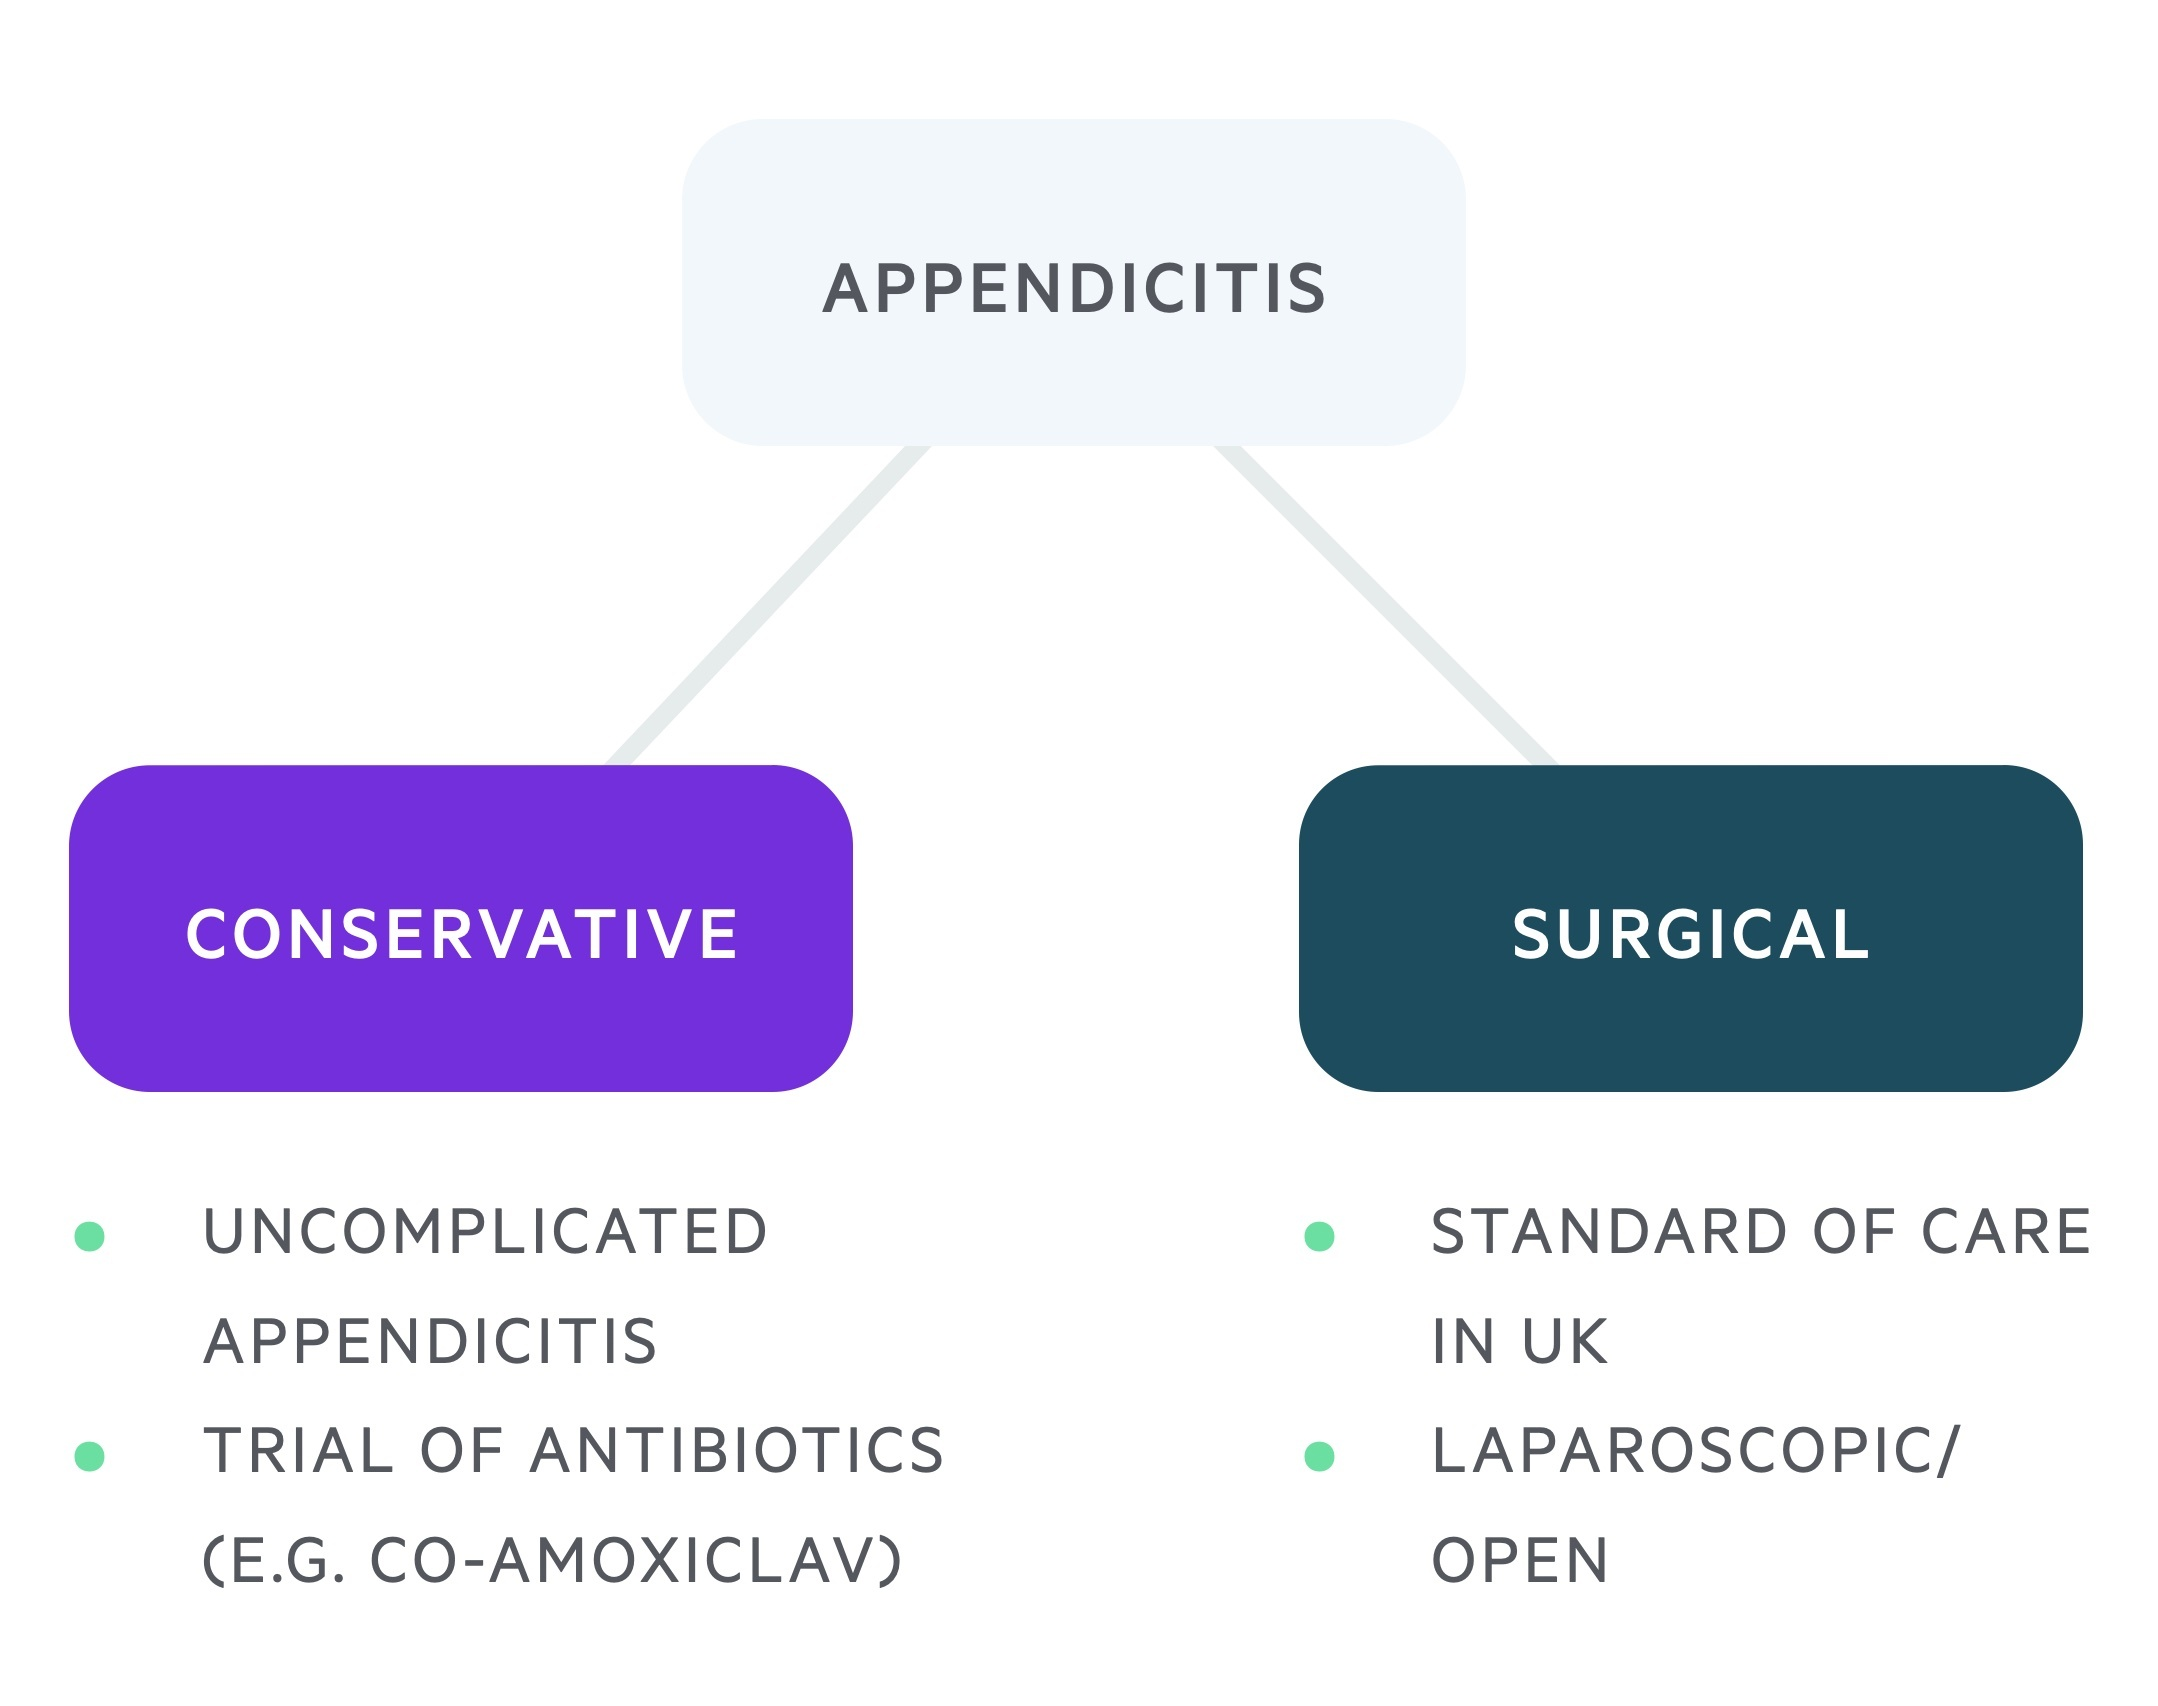 Management of appendicitis